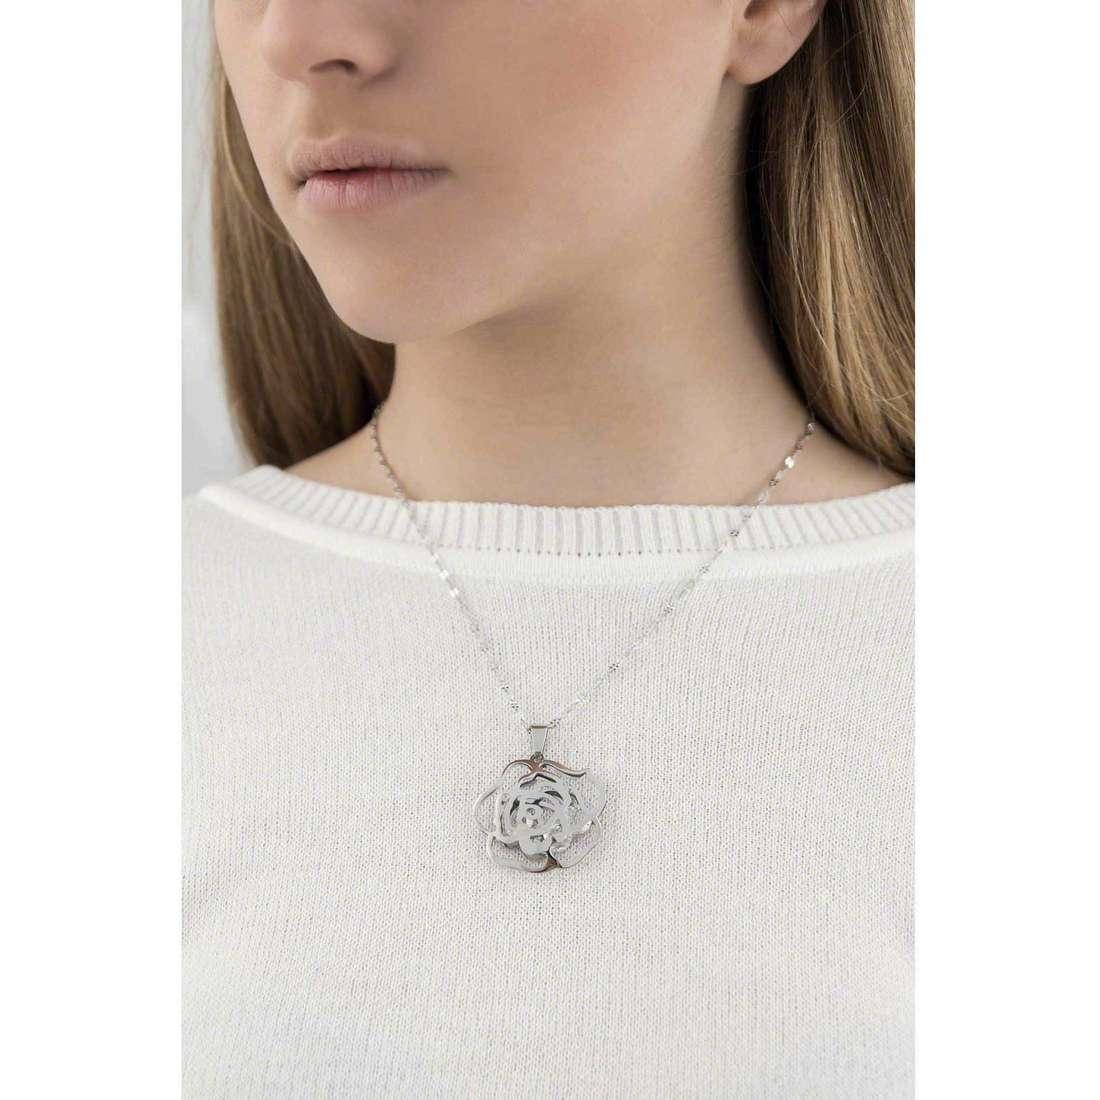 Marlù necklaces Woman Chic woman 2CN0036 indosso